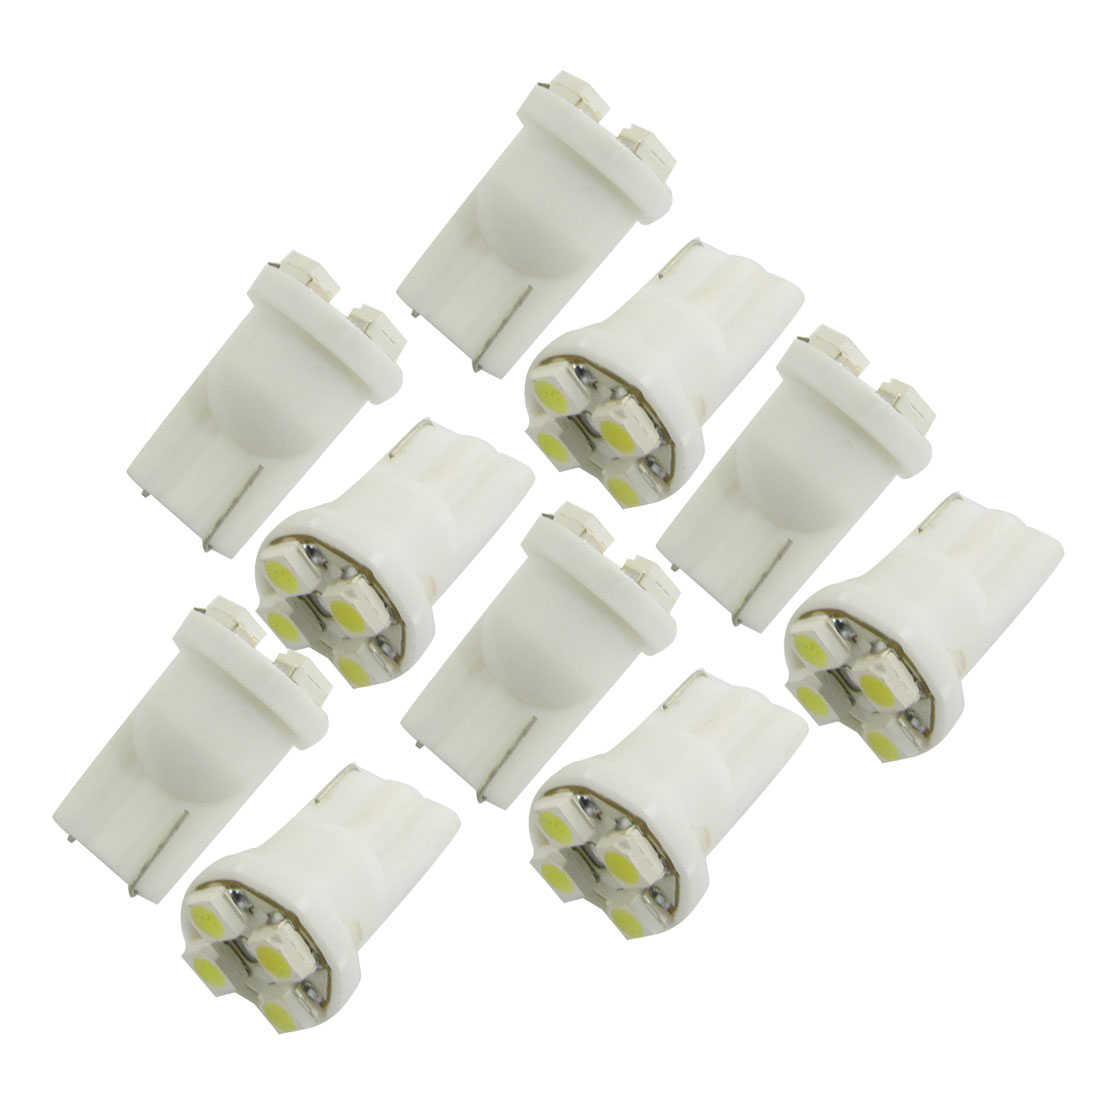 10X T10 194 168 W5W Wedge 1210 SMD 4 LED Bulbs White Car Tail Light 12V